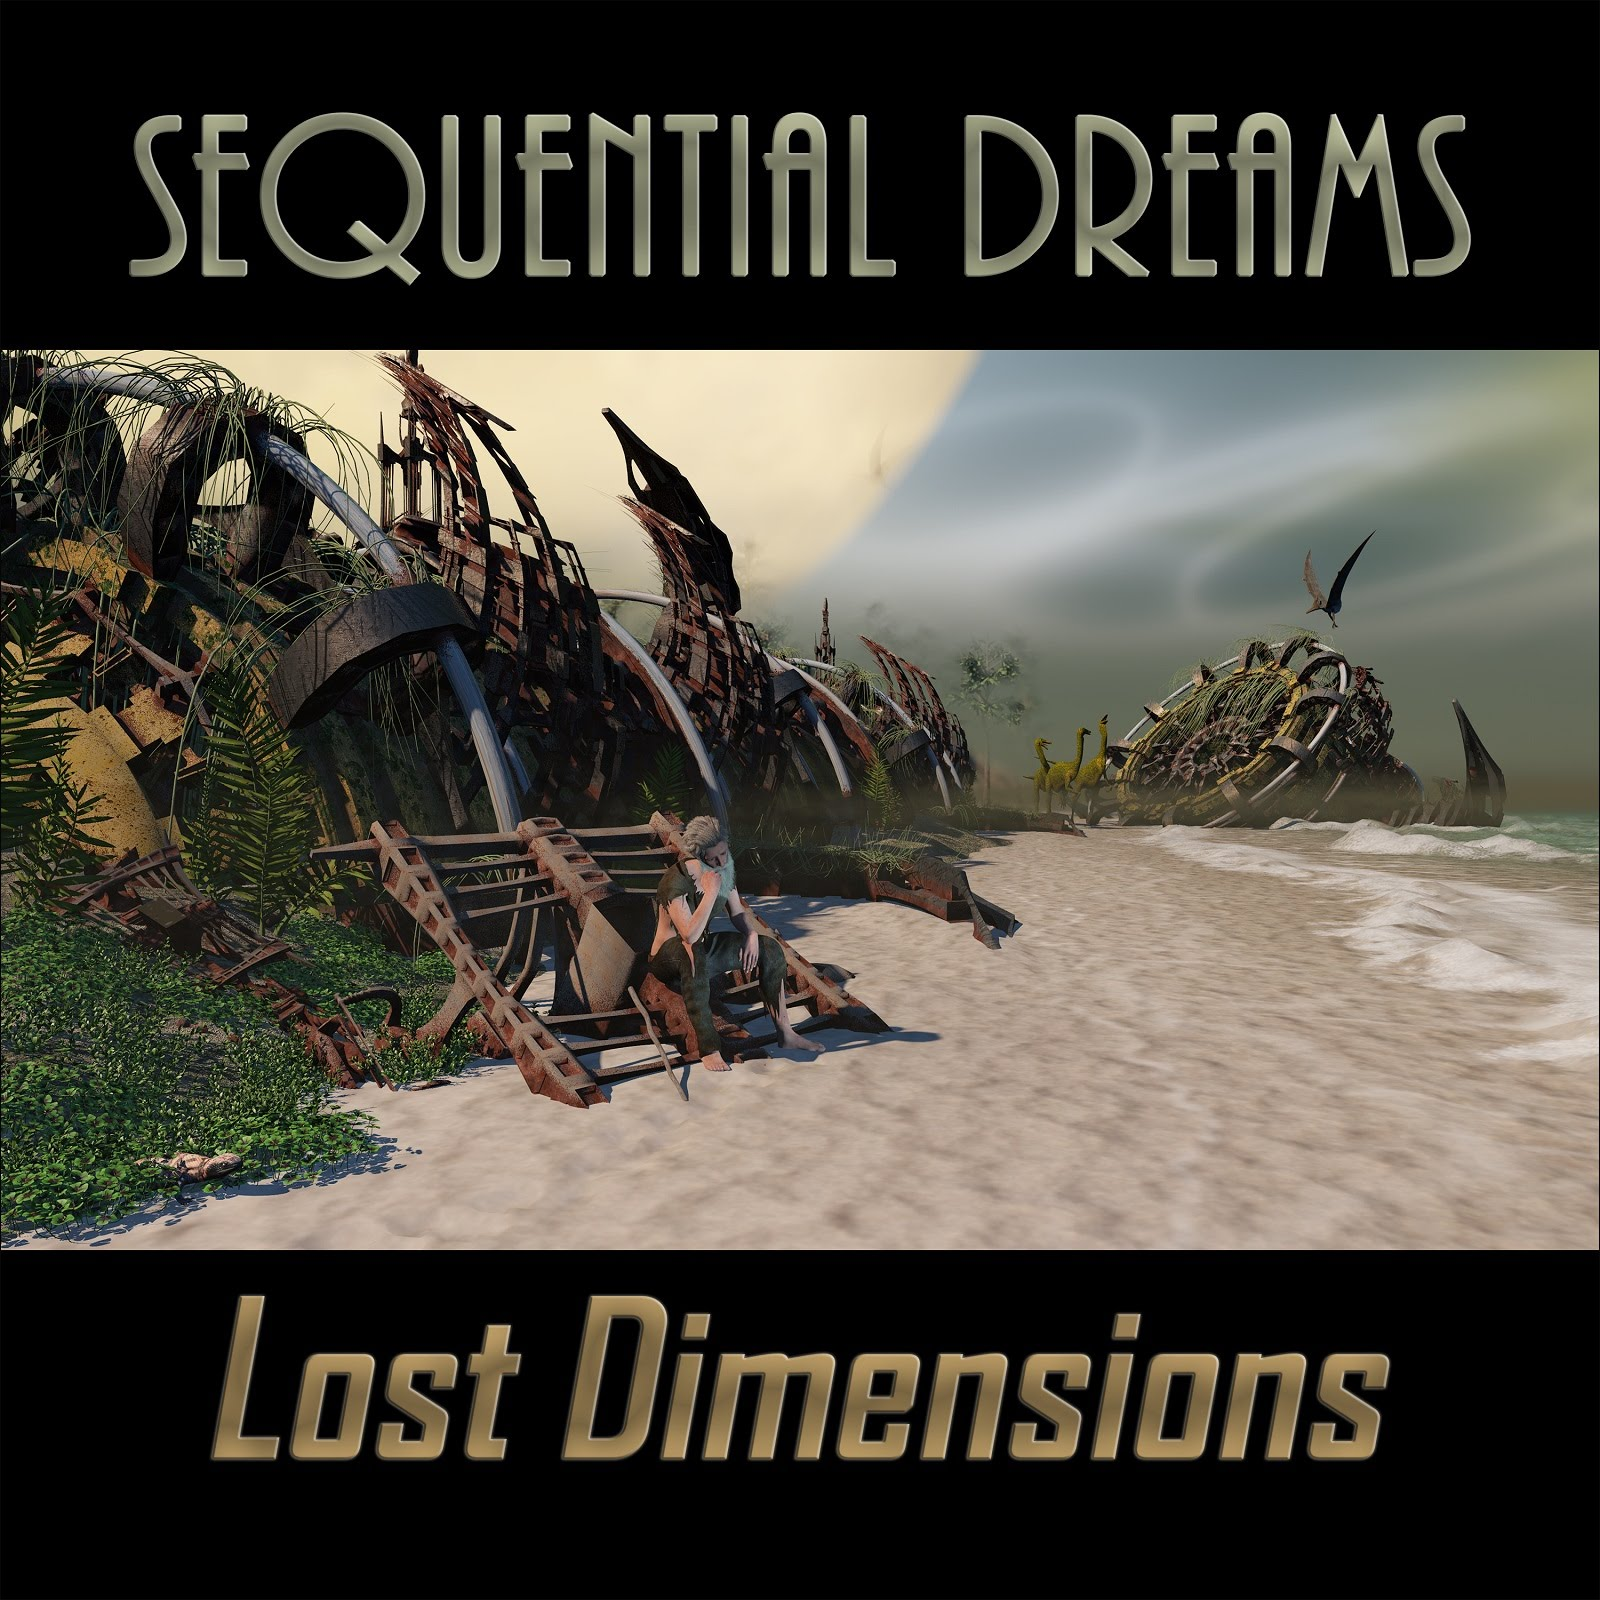 Sequential Dreams - Lost Dimensions